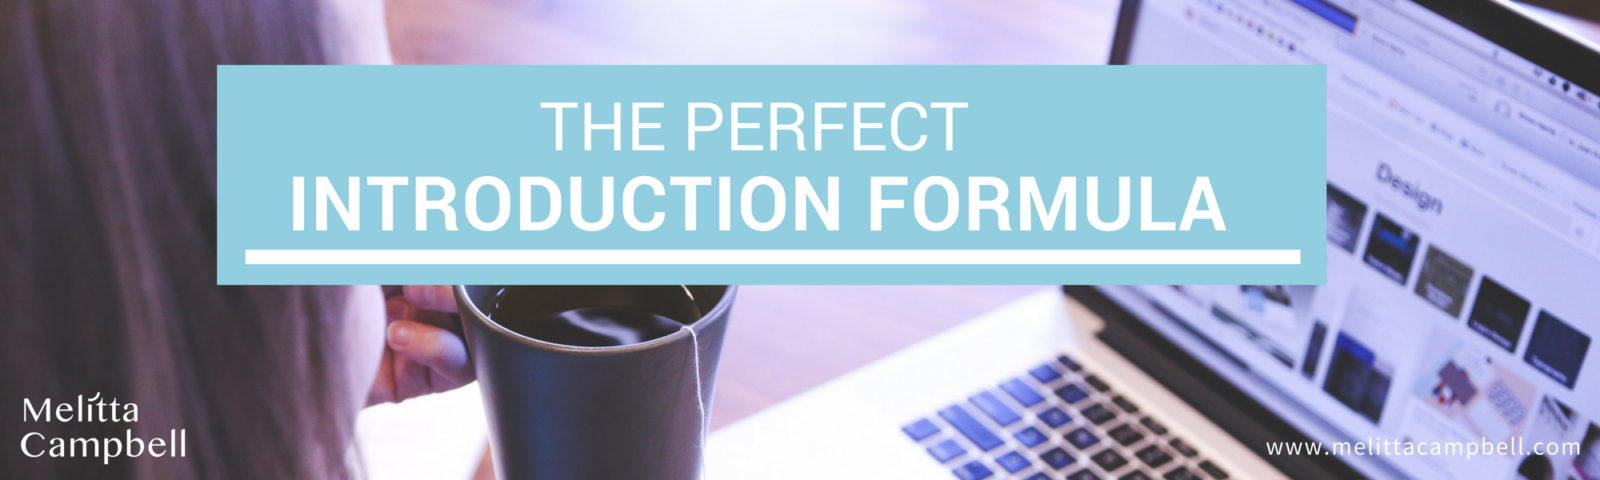 The Perfect Introduction Formula